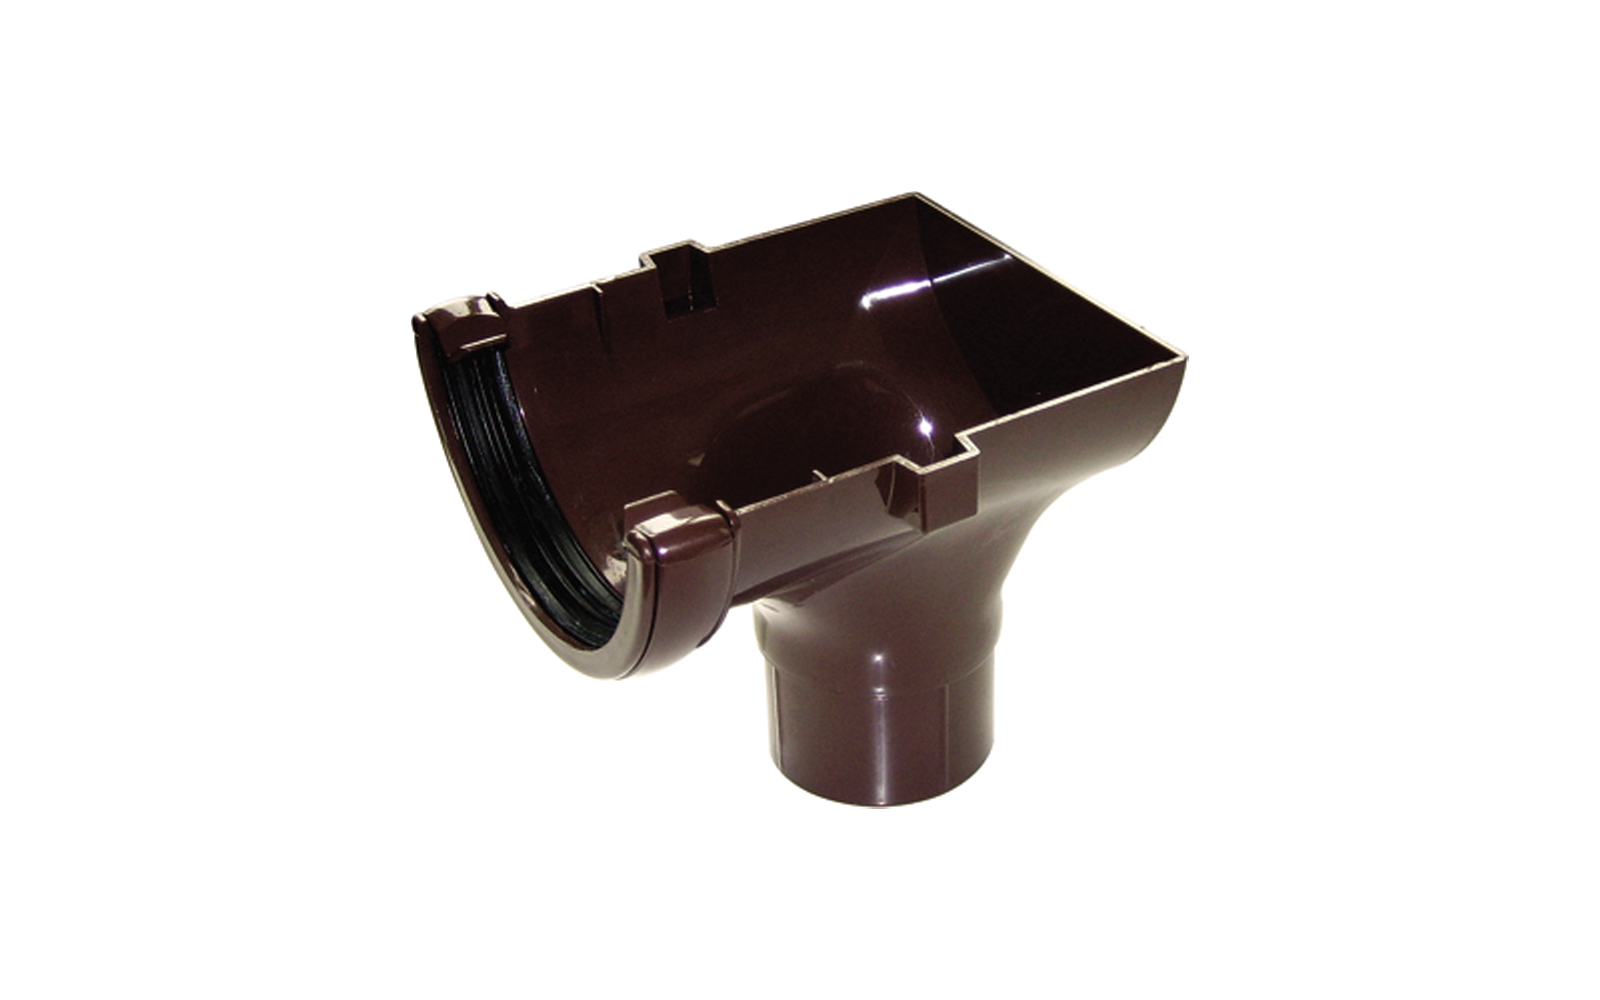 FLOPLAST HALF ROUND GUTTER - RO2 STOPEND OUTLET - BROWN